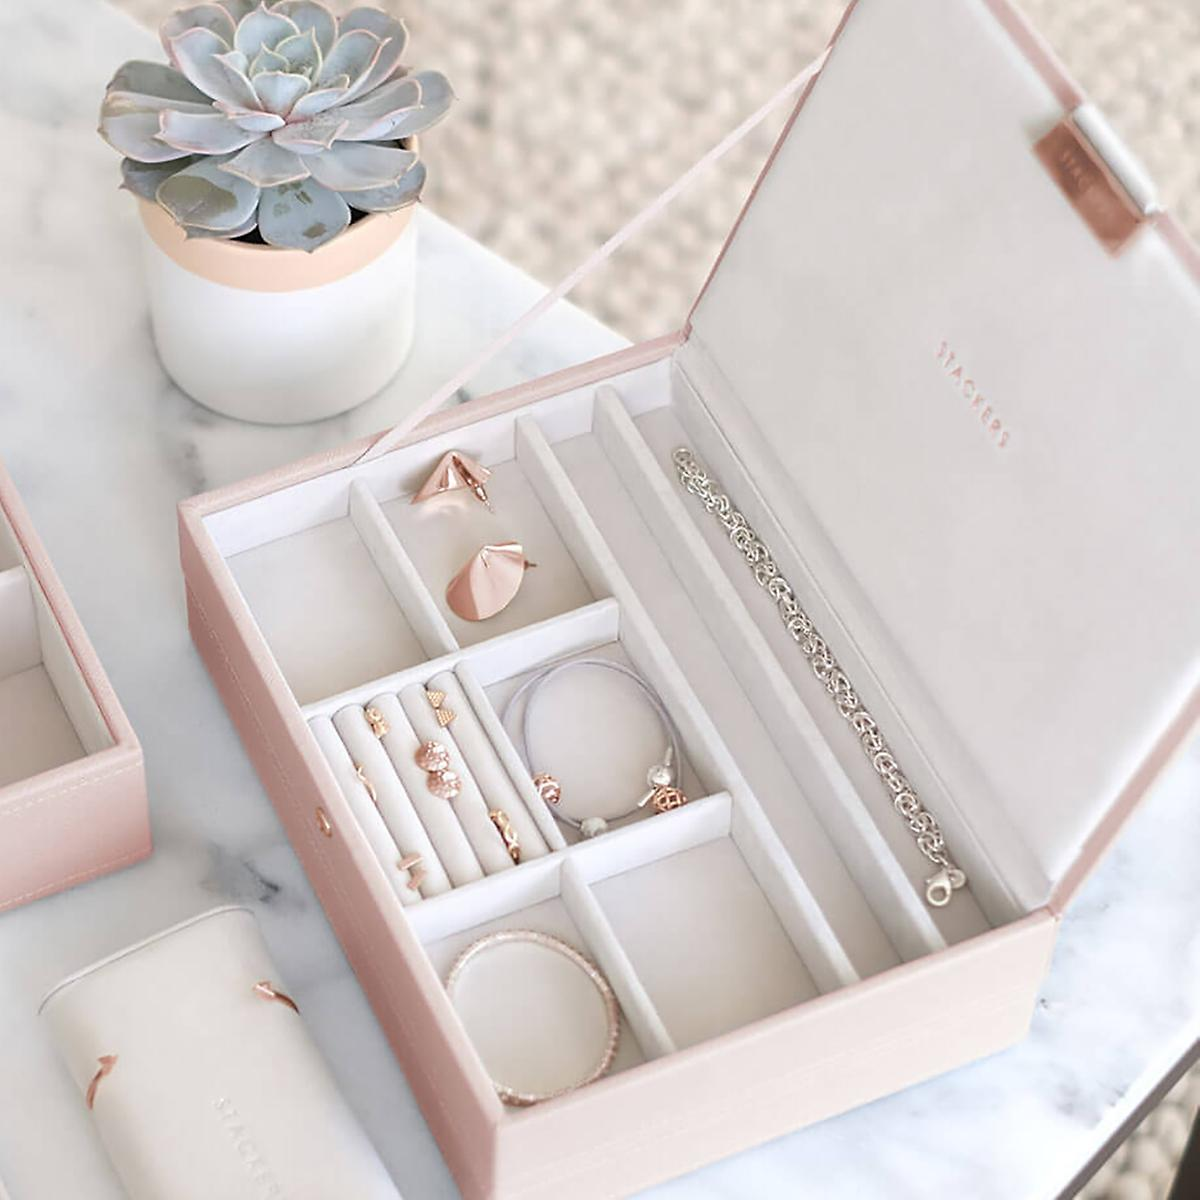 Who doesn't love a classic jewelry box? And this one is the perfect blush to add a romantic touch to your bathroom, bedroom, or closet. Fill in with all your bracelets, rings, and earrings to open a box full of fun jewelry every morning.